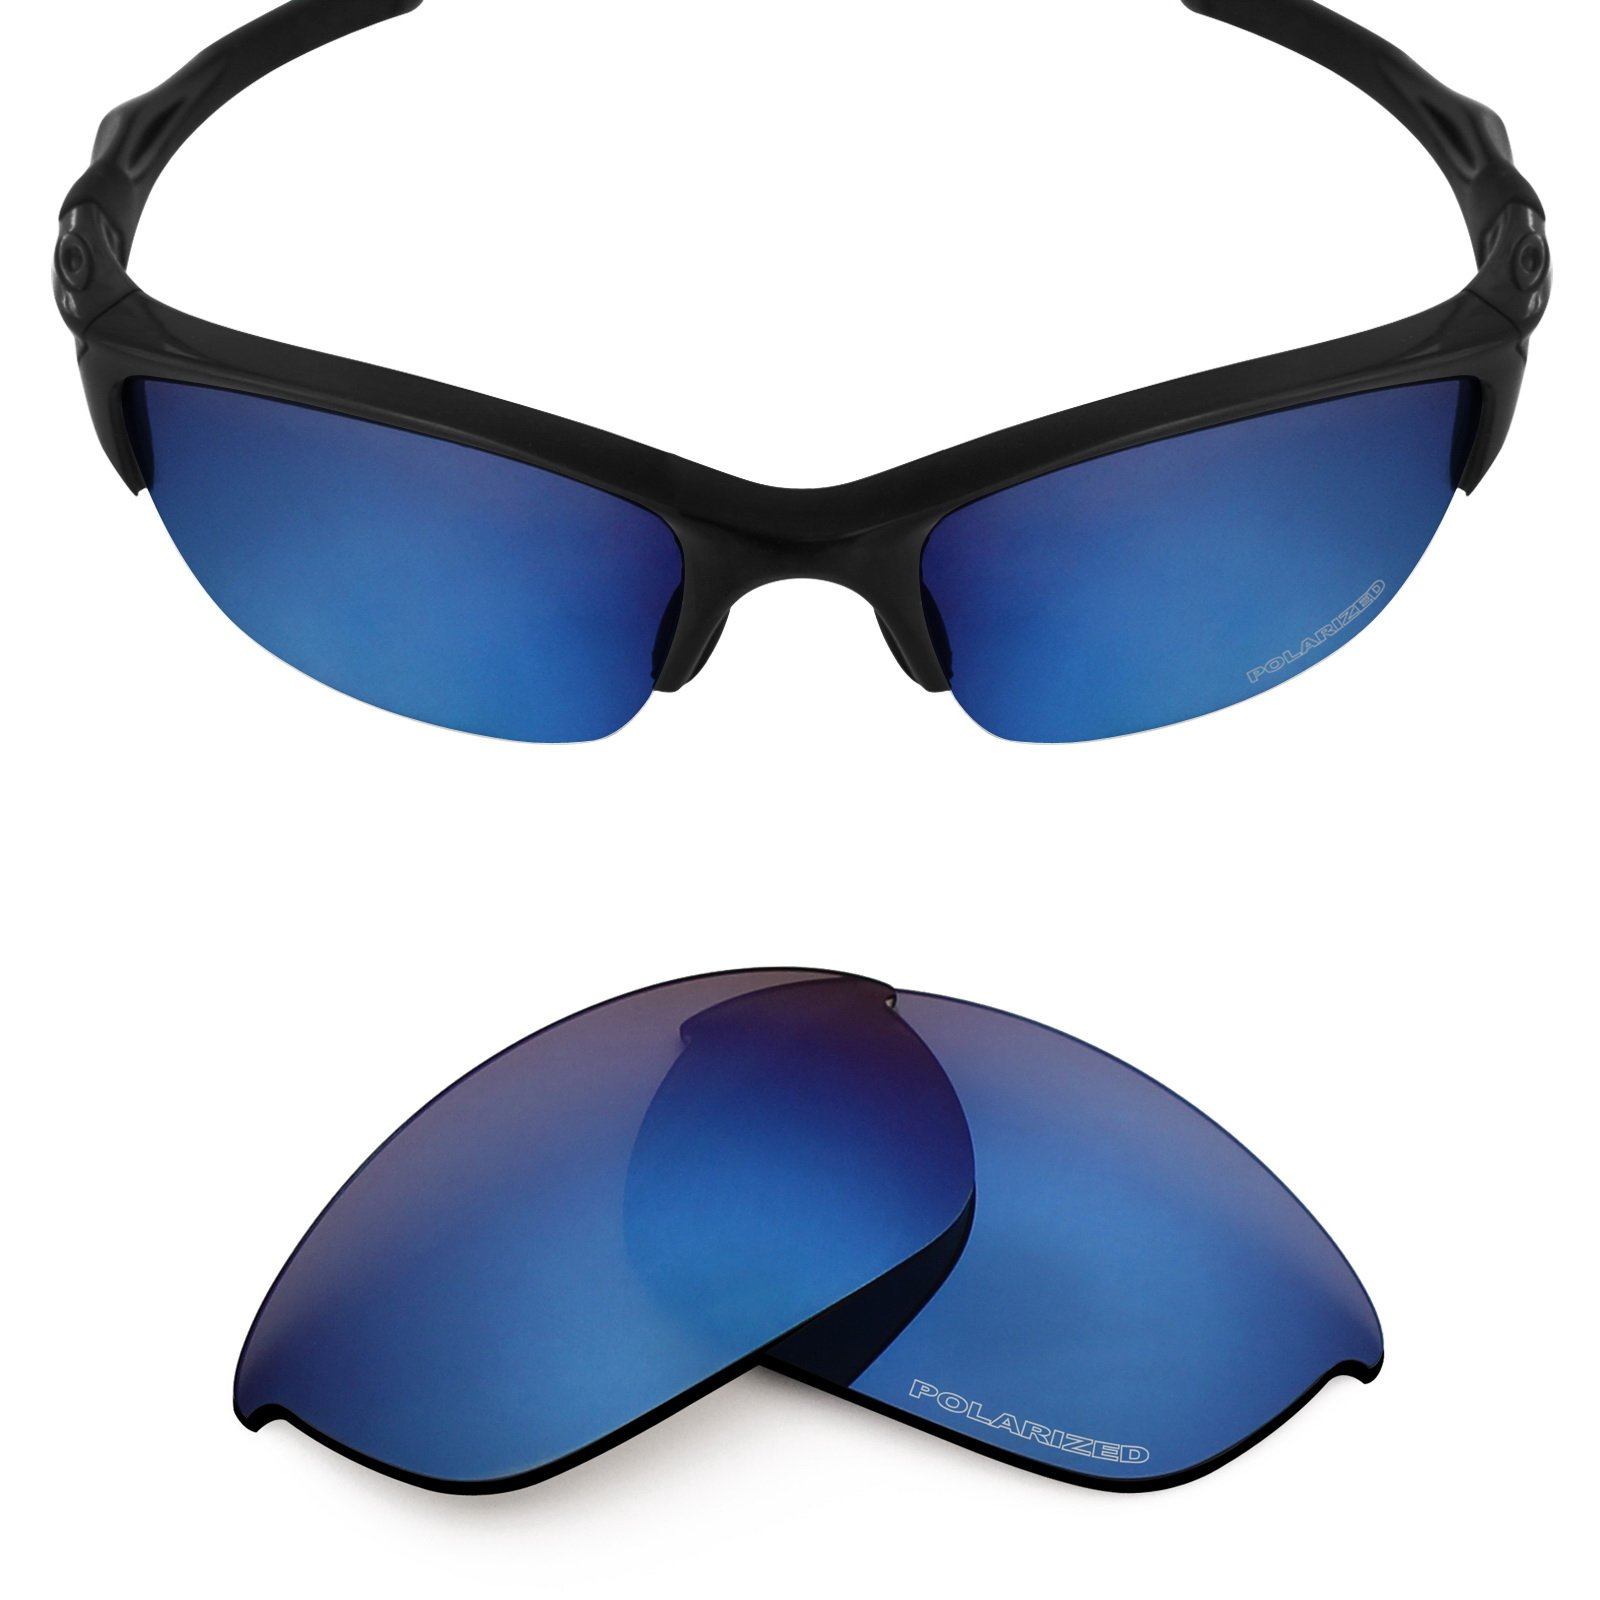 Mryok+ Polarized Replacement Lenses for Oakley Half Jacket 2.0 - Pacific Blue